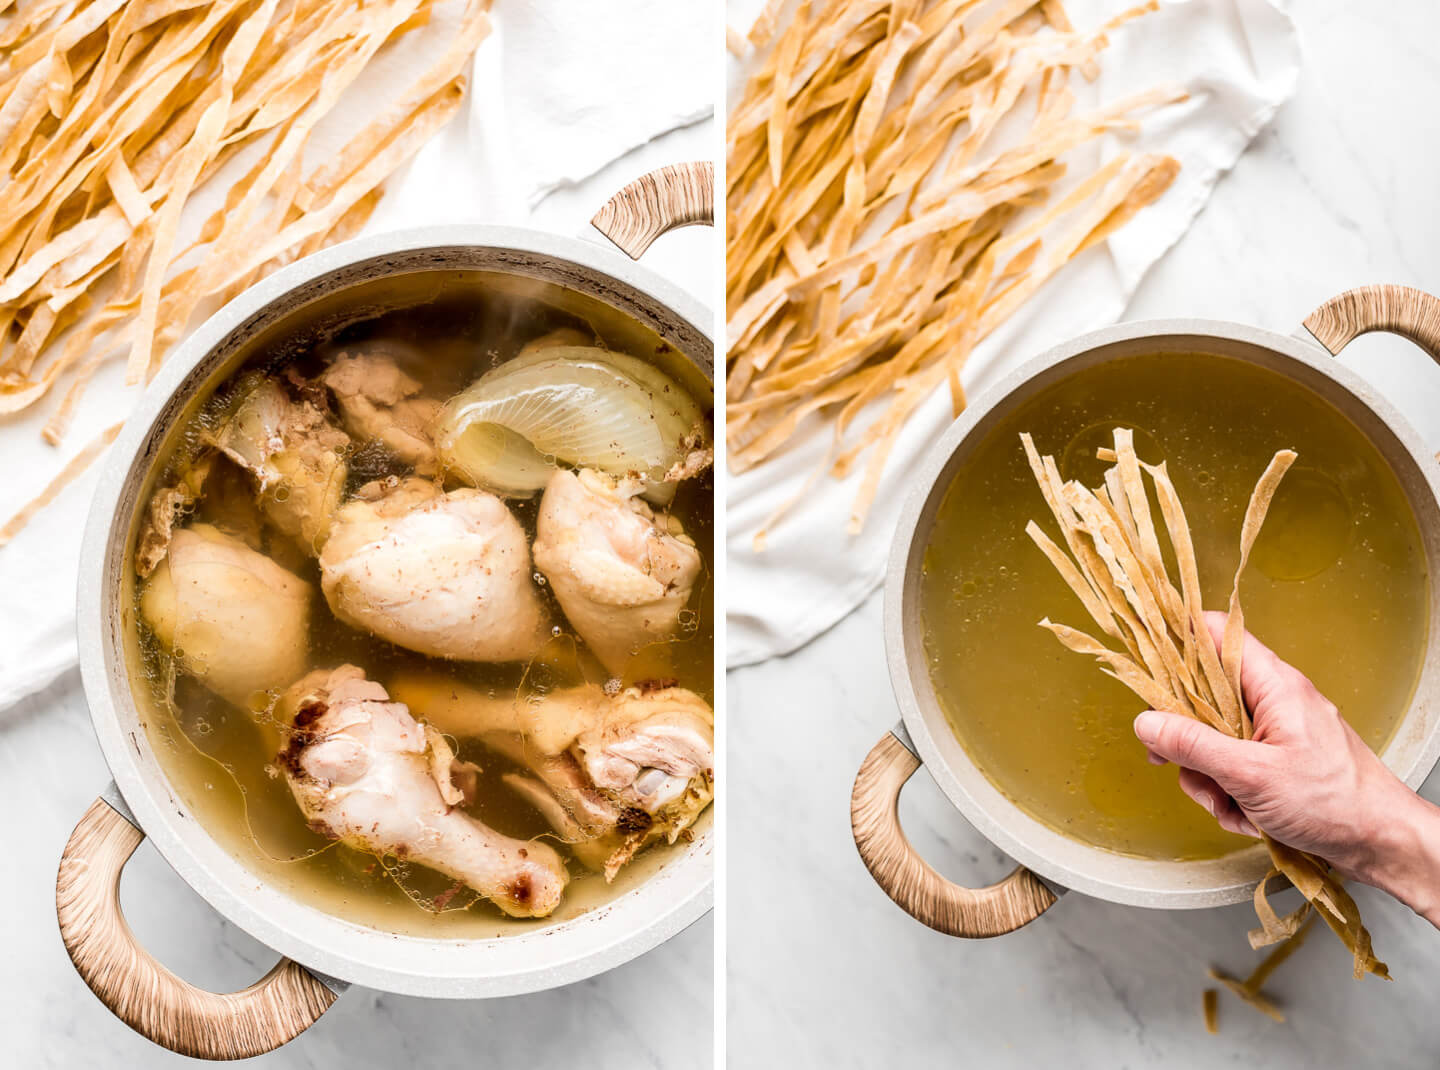 A pot of bone-in skin-on chicken cooked in broth and a pot of chicken broth with a hand holding dried egg noodles to drop in.